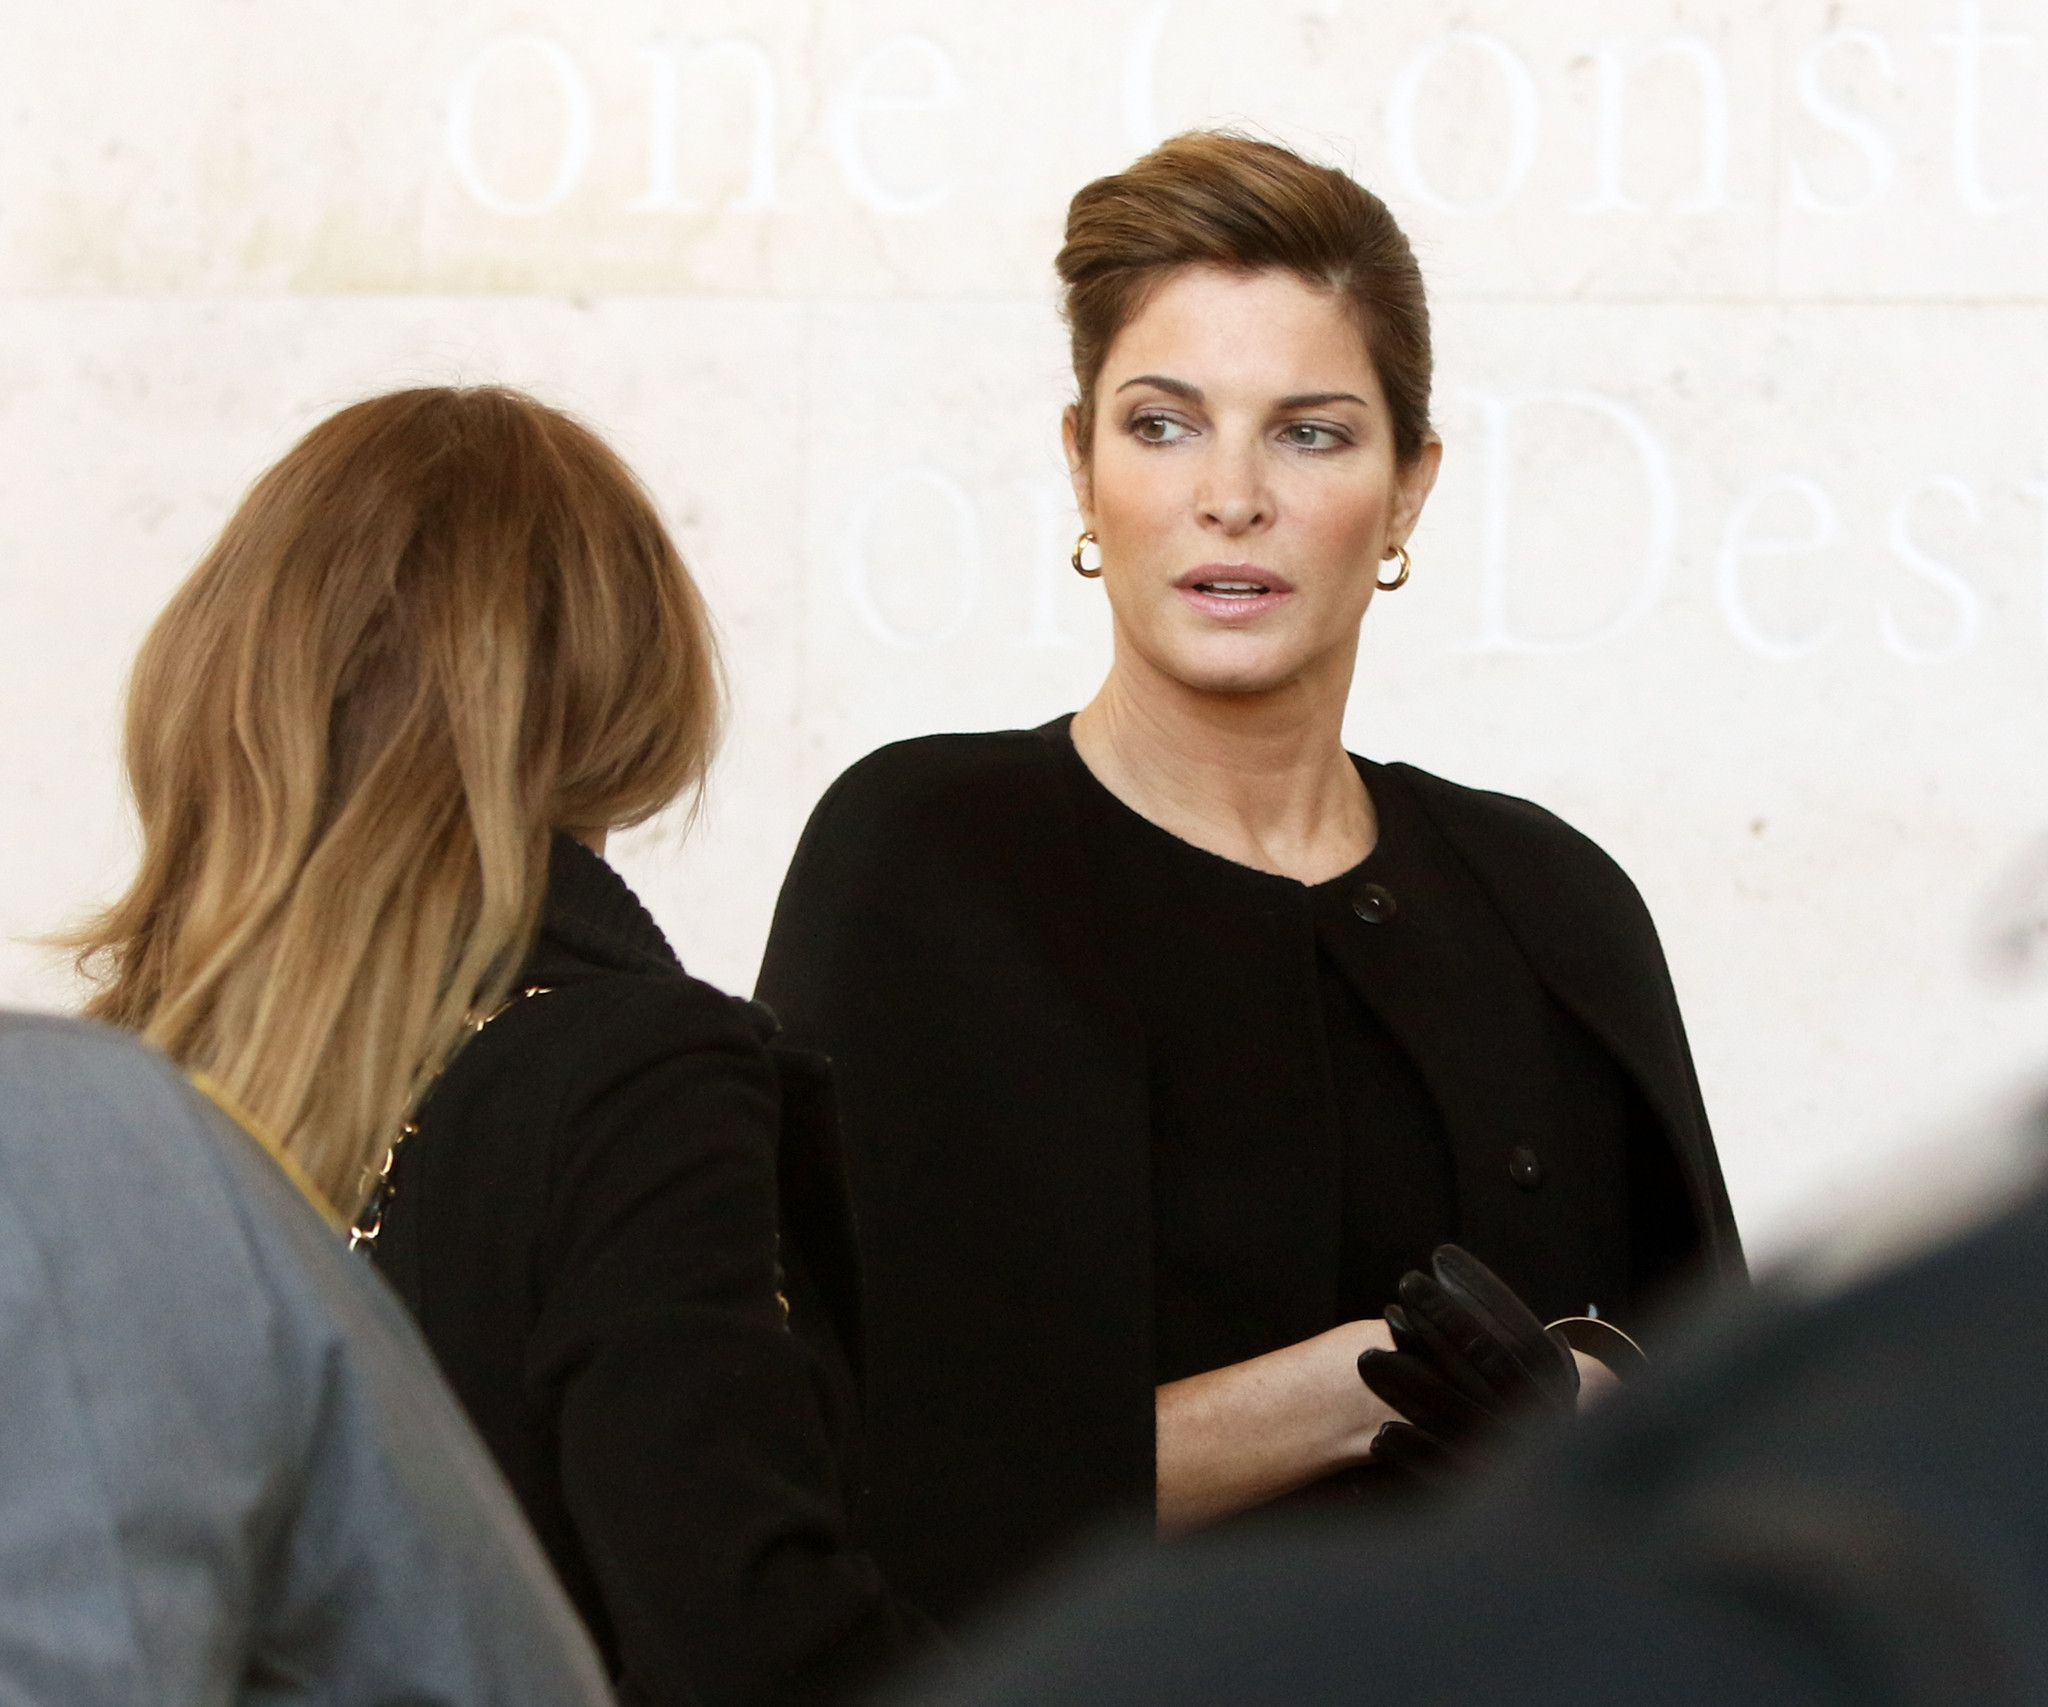 supermodel stephanie seymour applies for alcohol education program